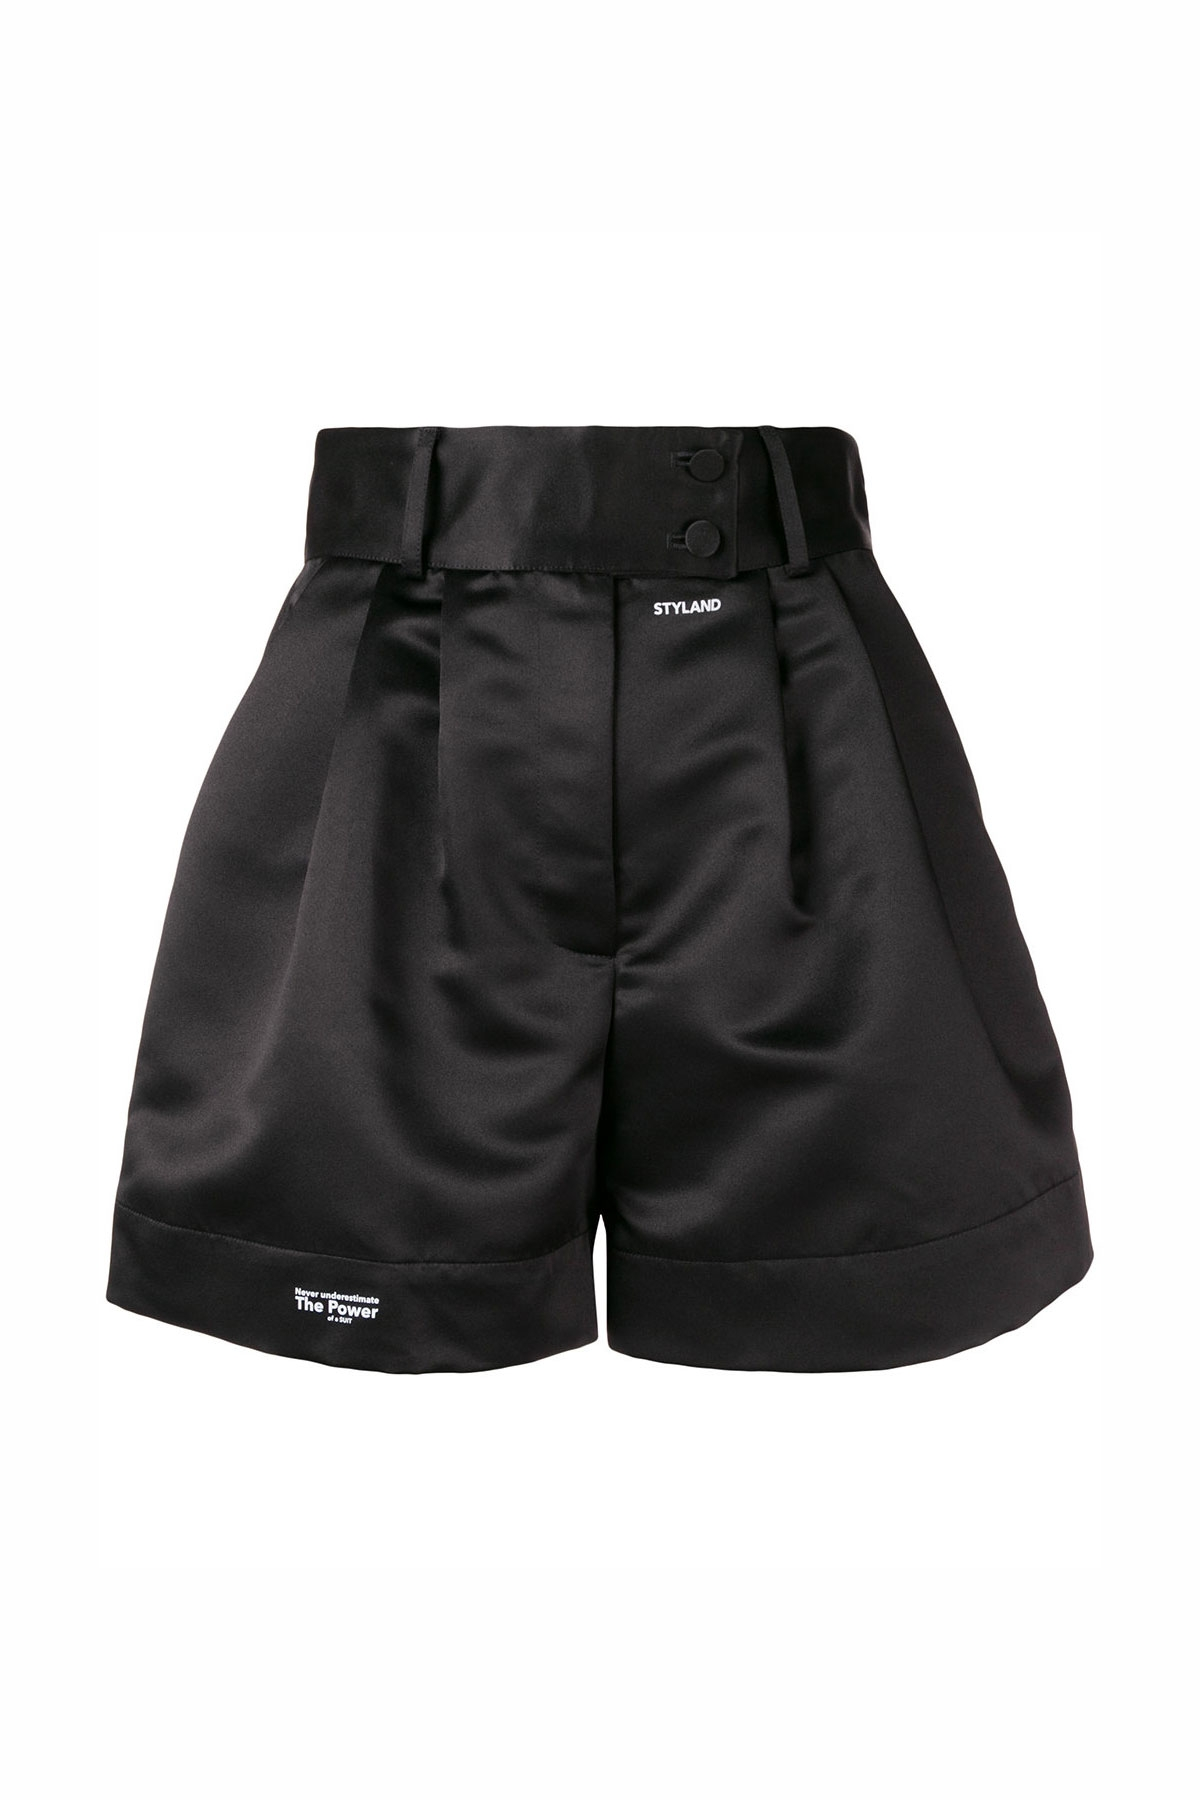 BLACK SATIN SHORTS